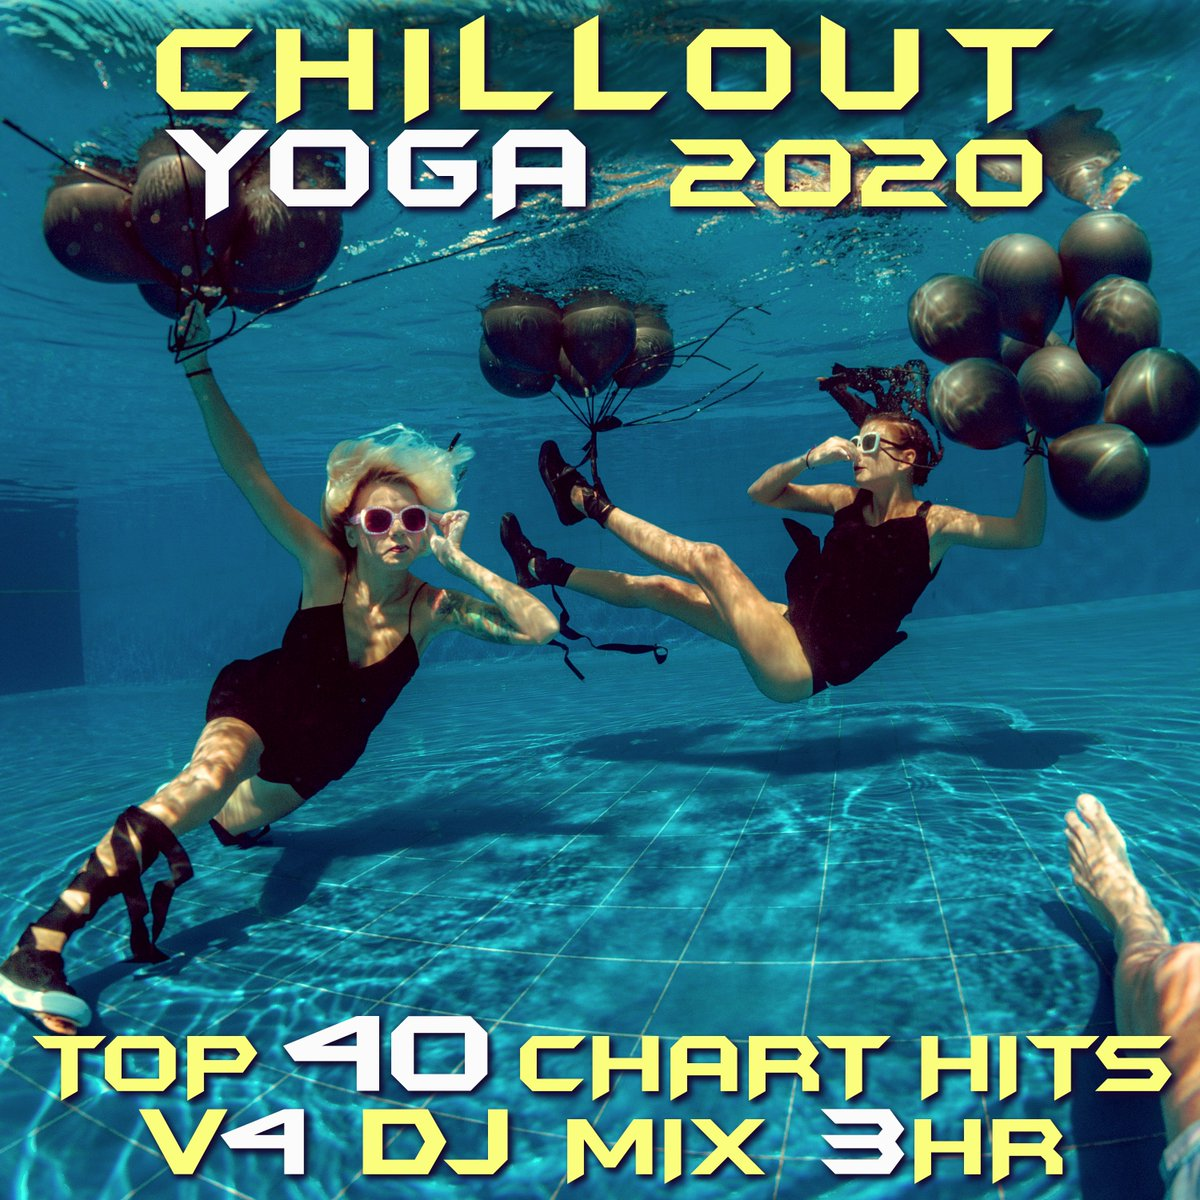 Chillout Yoga 2020 Top 40 Chart Hits V4 DJ Mix 3 HR out today! Very chill beach party mix. #chill #Chillout  #yoga  #Beach  #djmix #chilling #beachday #YogaDuringLockDown #yogaeverydamnday  https://www.amazon.com/Chill-Yoga-2020-Chart-Hits/dp/B088YQGC4N/ref=sr_1_1?dchild=1&keywords=chill%20out%20yoga%202020&qid=1590691209&s=dmusic&sr=1-1&fbclid=IwAR32piop46E-_-rBIW_V0oPoqQX3JJb9DFhF0vEOzf07FEmRByIDlWEq3SI …pic.twitter.com/Y5ib43ph7y